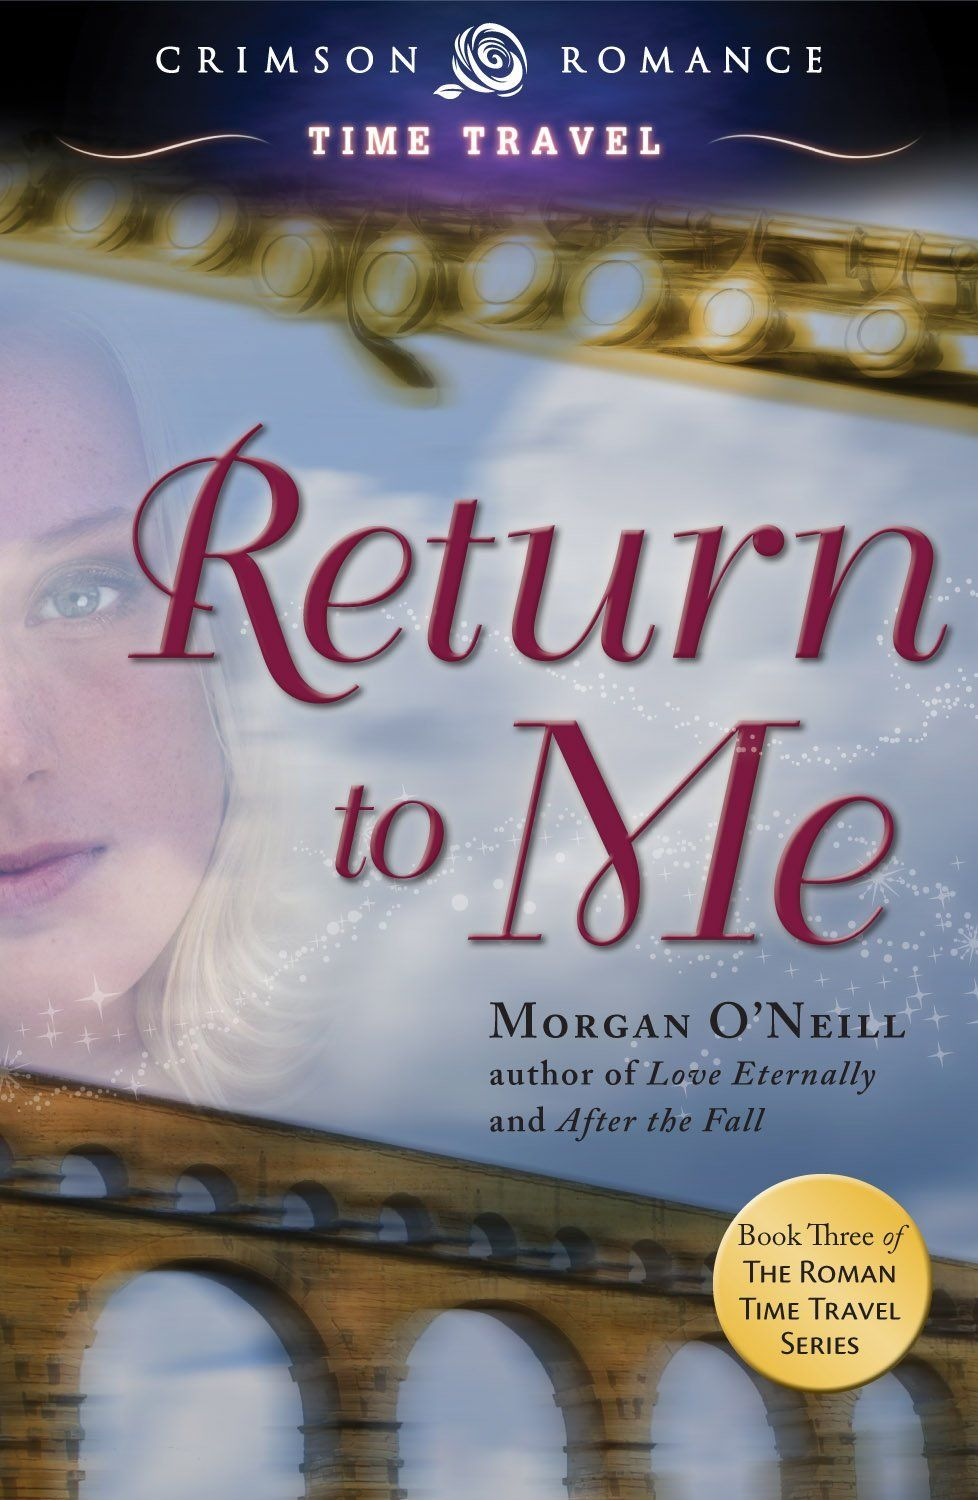 The third novel in the Roman Time Travel series, Return to Me finds time traveler Gigi Perrin happily settled into twenty-first century life with her husband, the former Roman senator and military commander, Quintus Magnus. Gigi has resumed her successful musical career, playing the flute for her adoring fans, while making her first foray into Hollywood by creating the musical score for a feature film about the Roman emperor Nero.